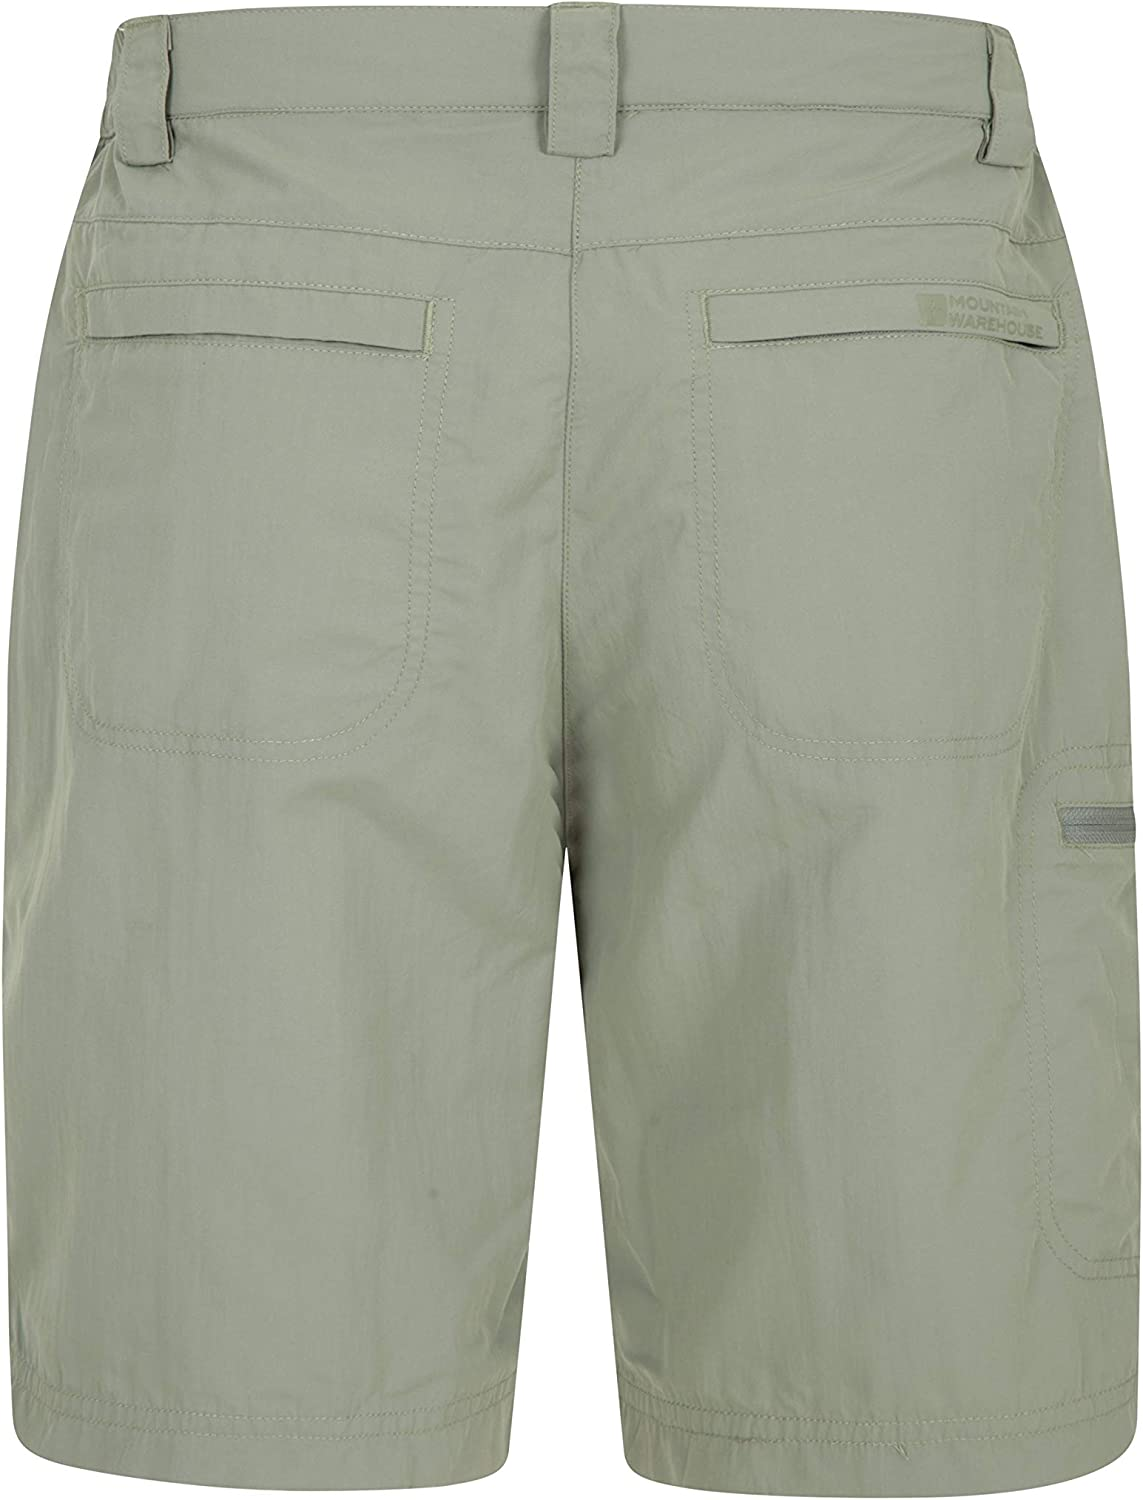 Pockets -Best for Walking Lightweight Ladies Short Pants UV Protection Trousers Stretch Bottoms Mountain Warehouse Navigator Womens Anti-Mosquito Shorts Travelling